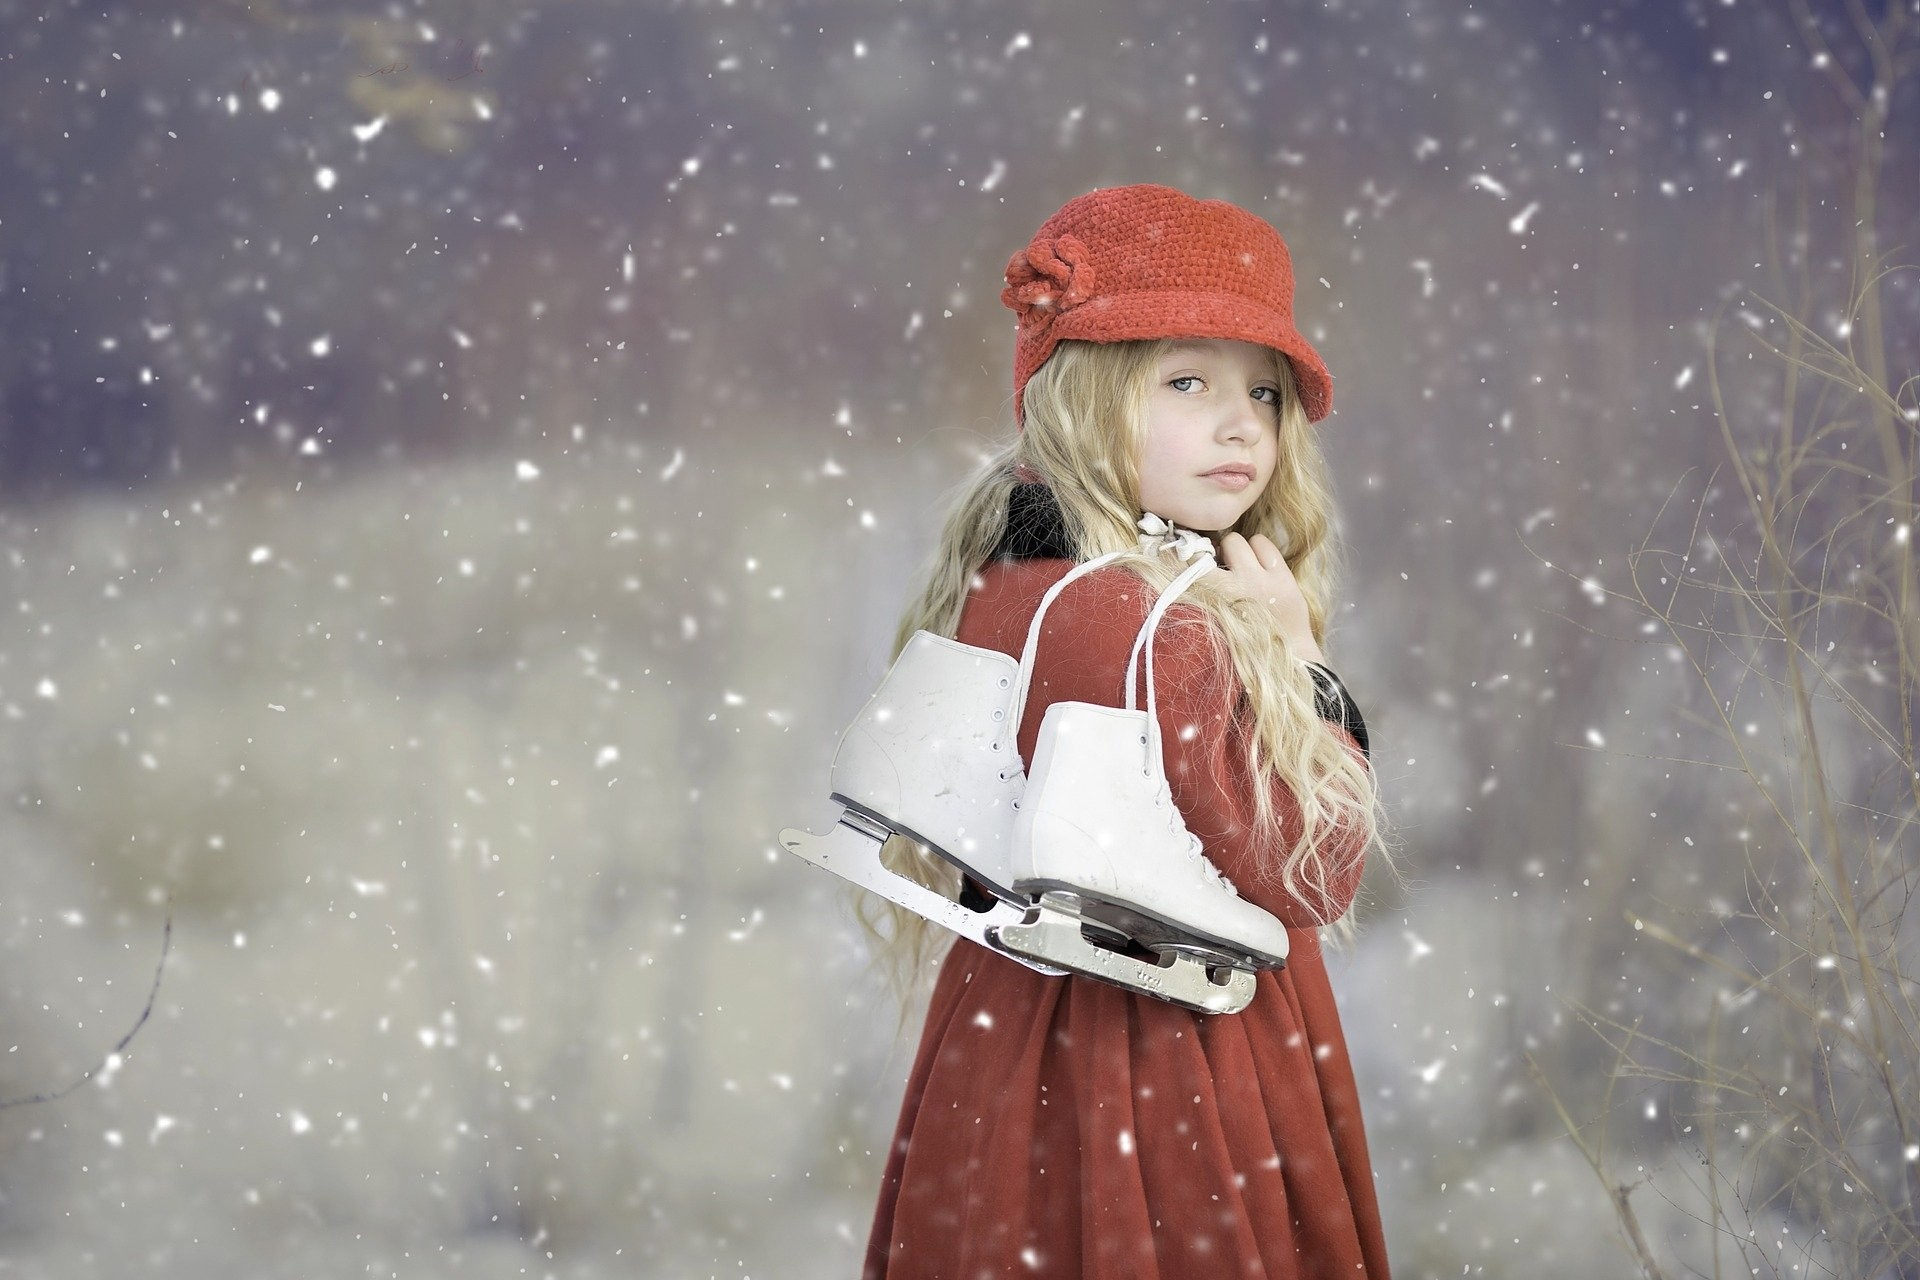 5 children friendly winter holidays inspirations in Poland